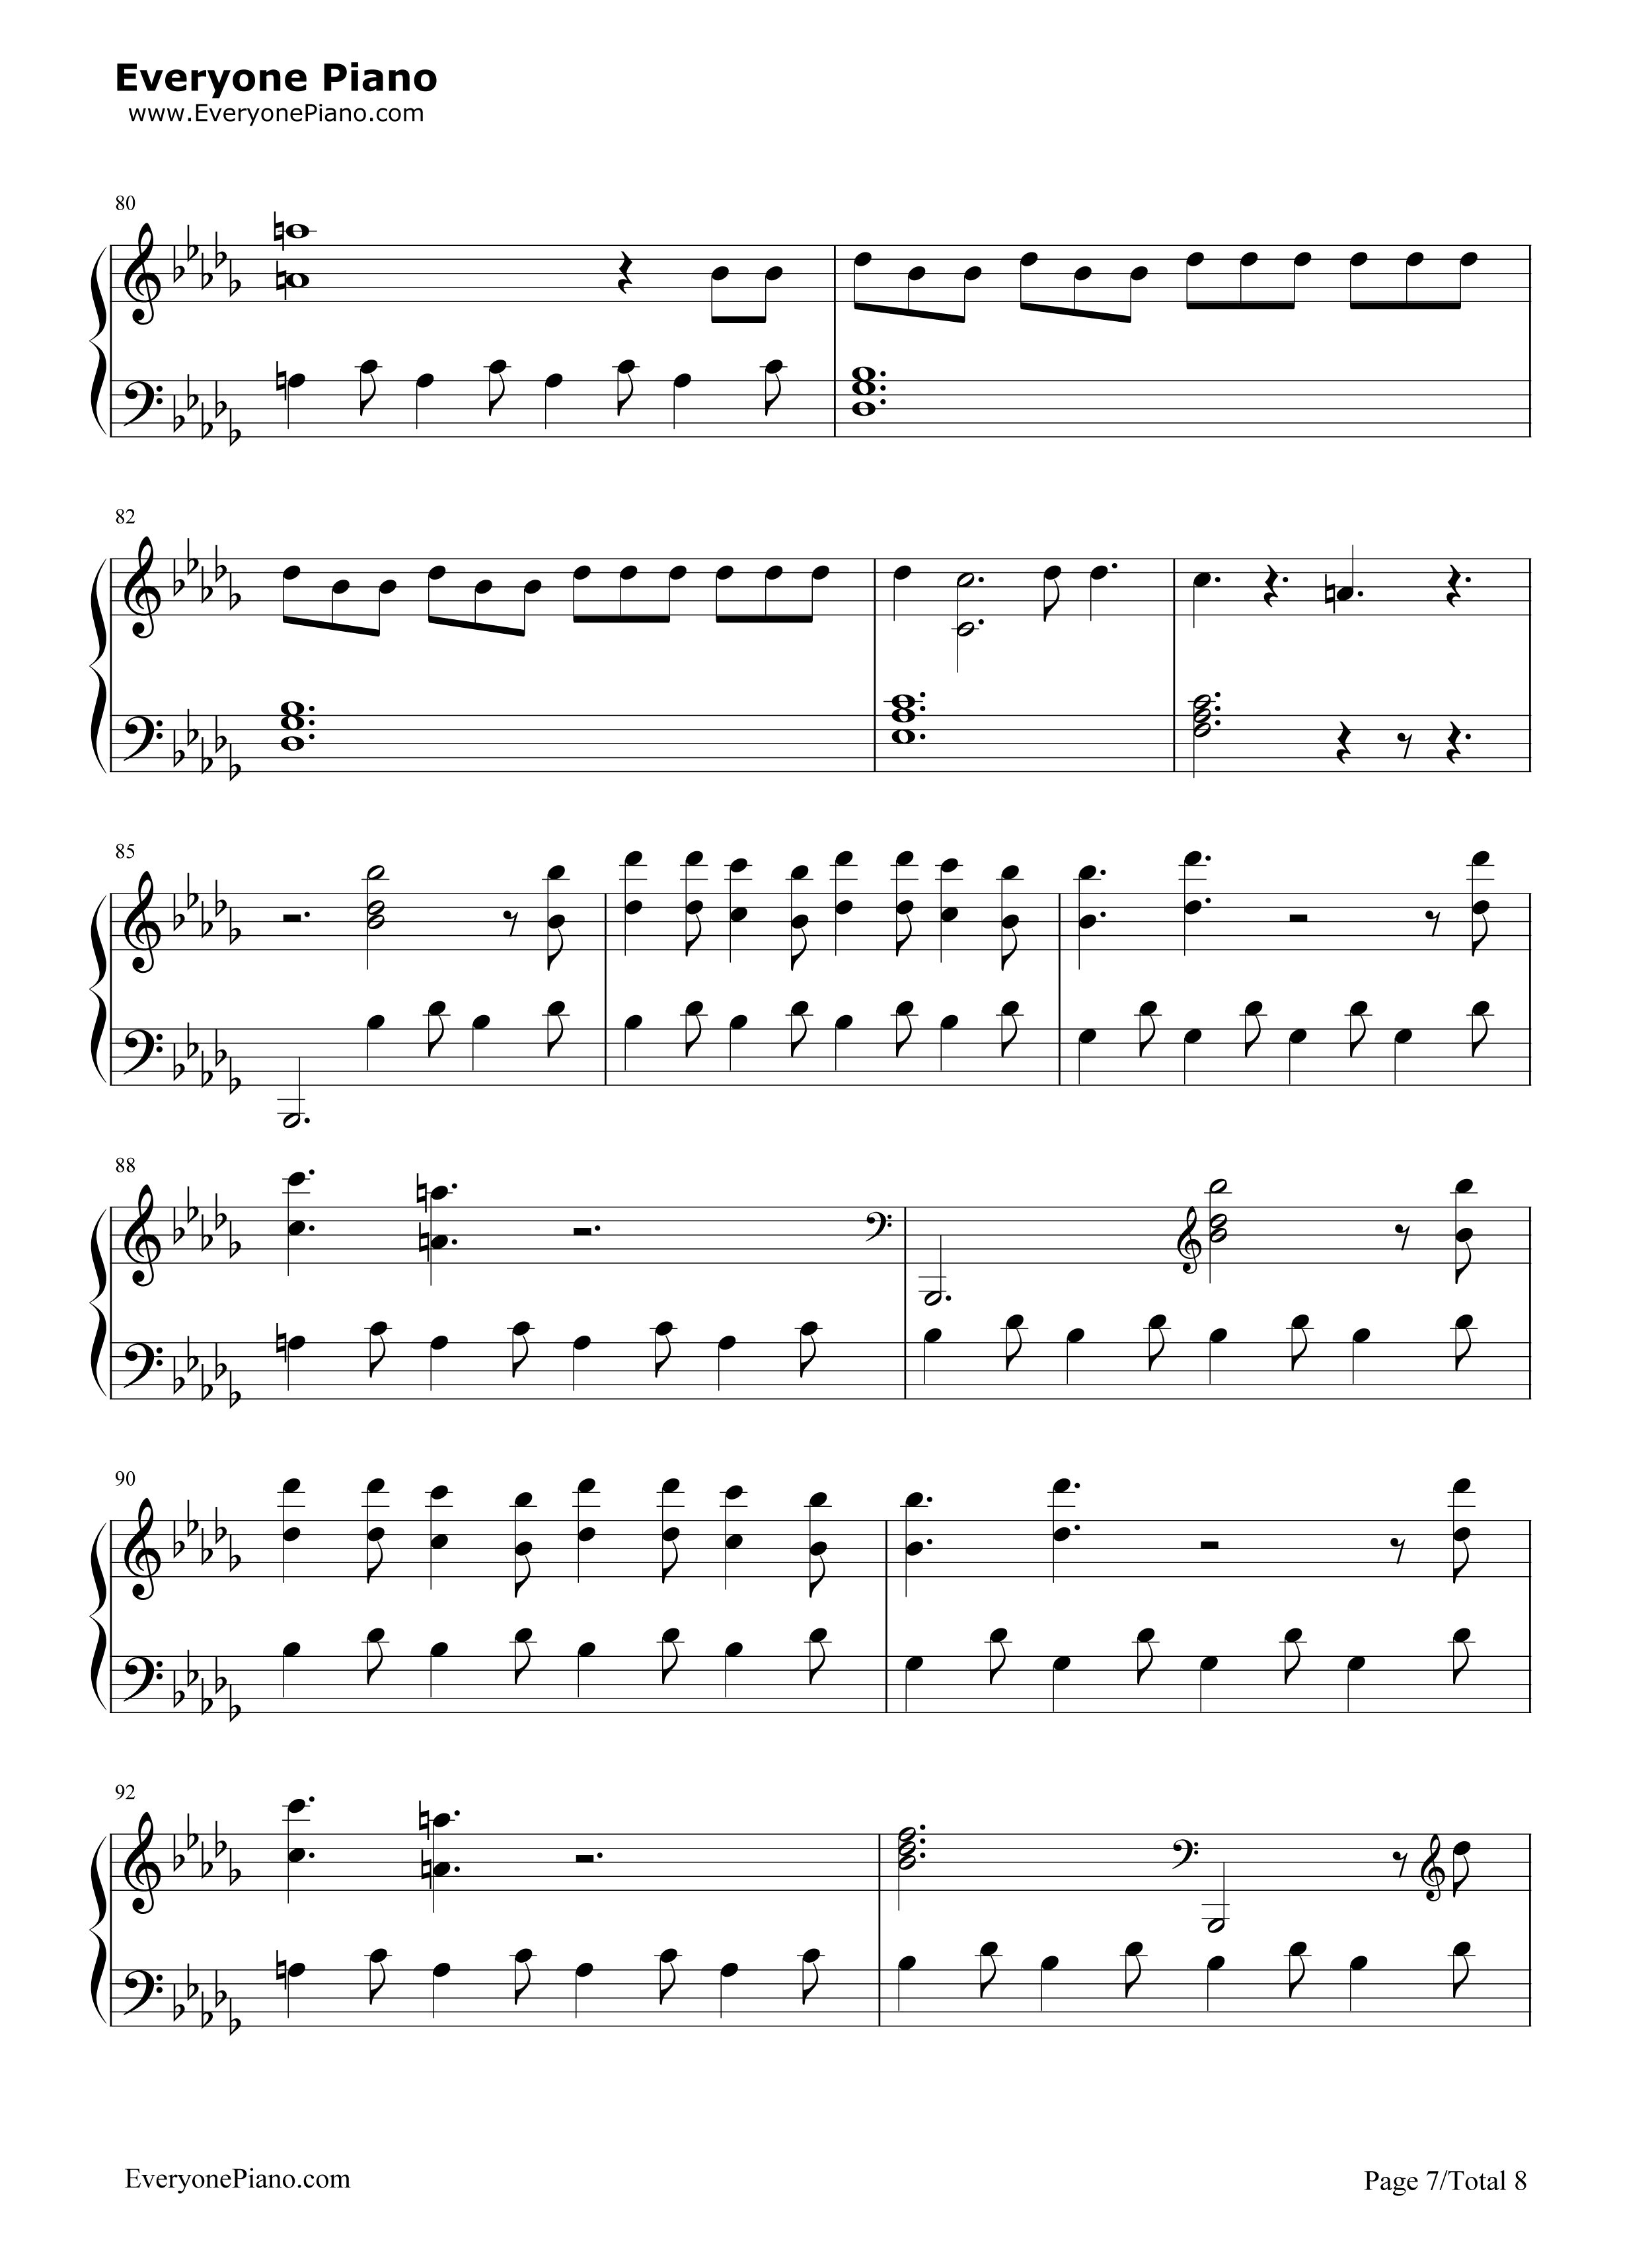 Believer imagine dragons stave preview 7 free piano sheet music listen now print sheet believer imagine dragons stave preview 7 hexwebz Gallery